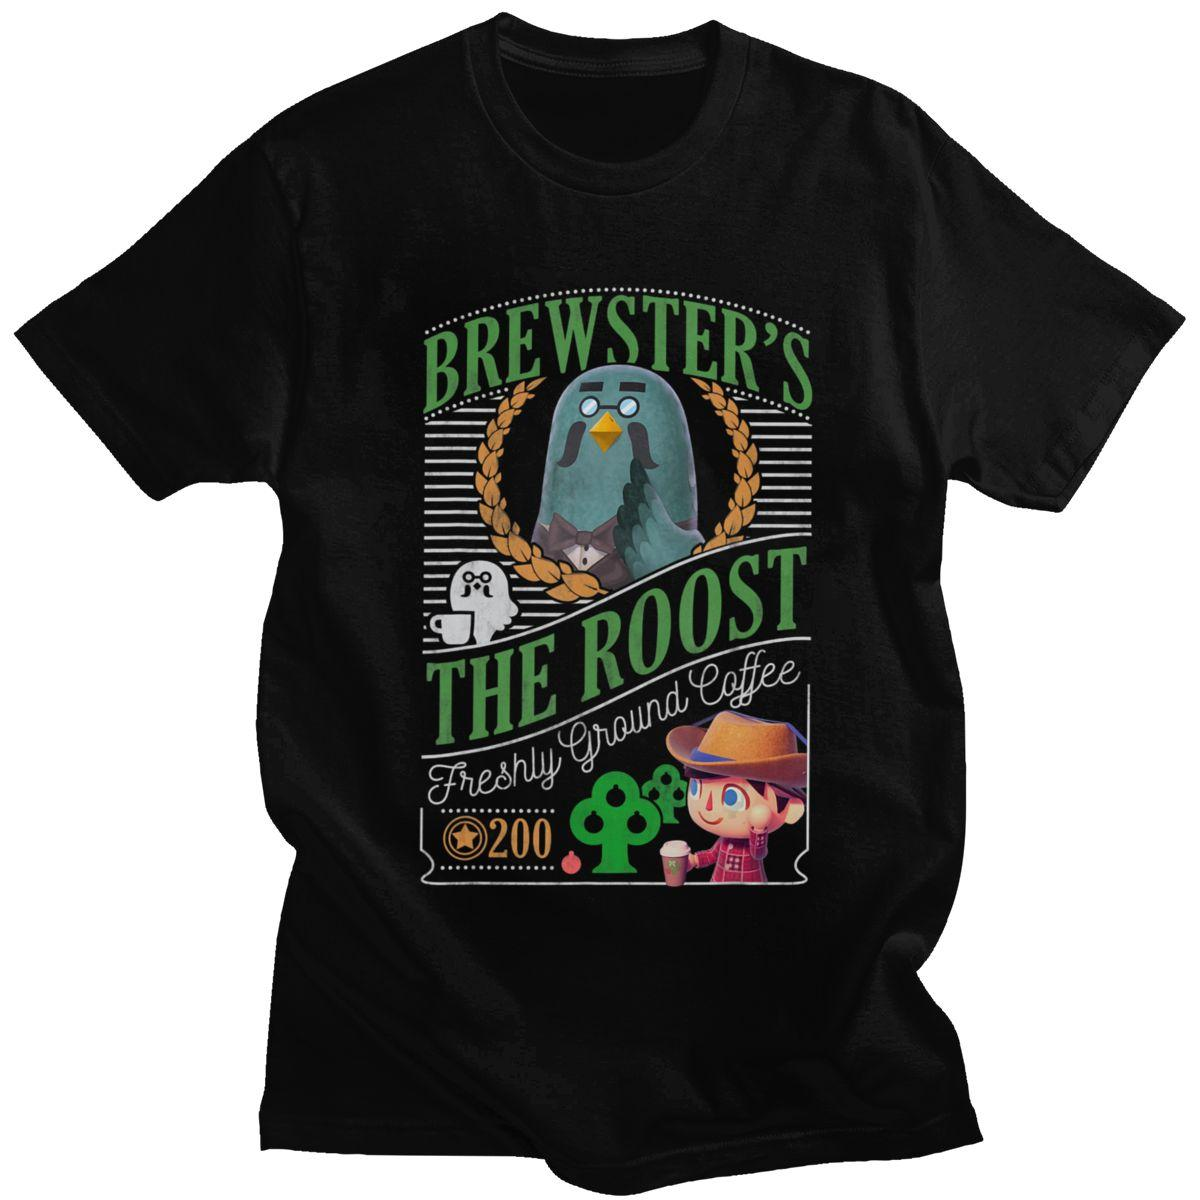 Vintage Animal Crossing T Shirt Men Short Sleeves Casual Brewster's The Roost Cafe Tshirt Loose Fit 100% Cotton Tee Tops Gift